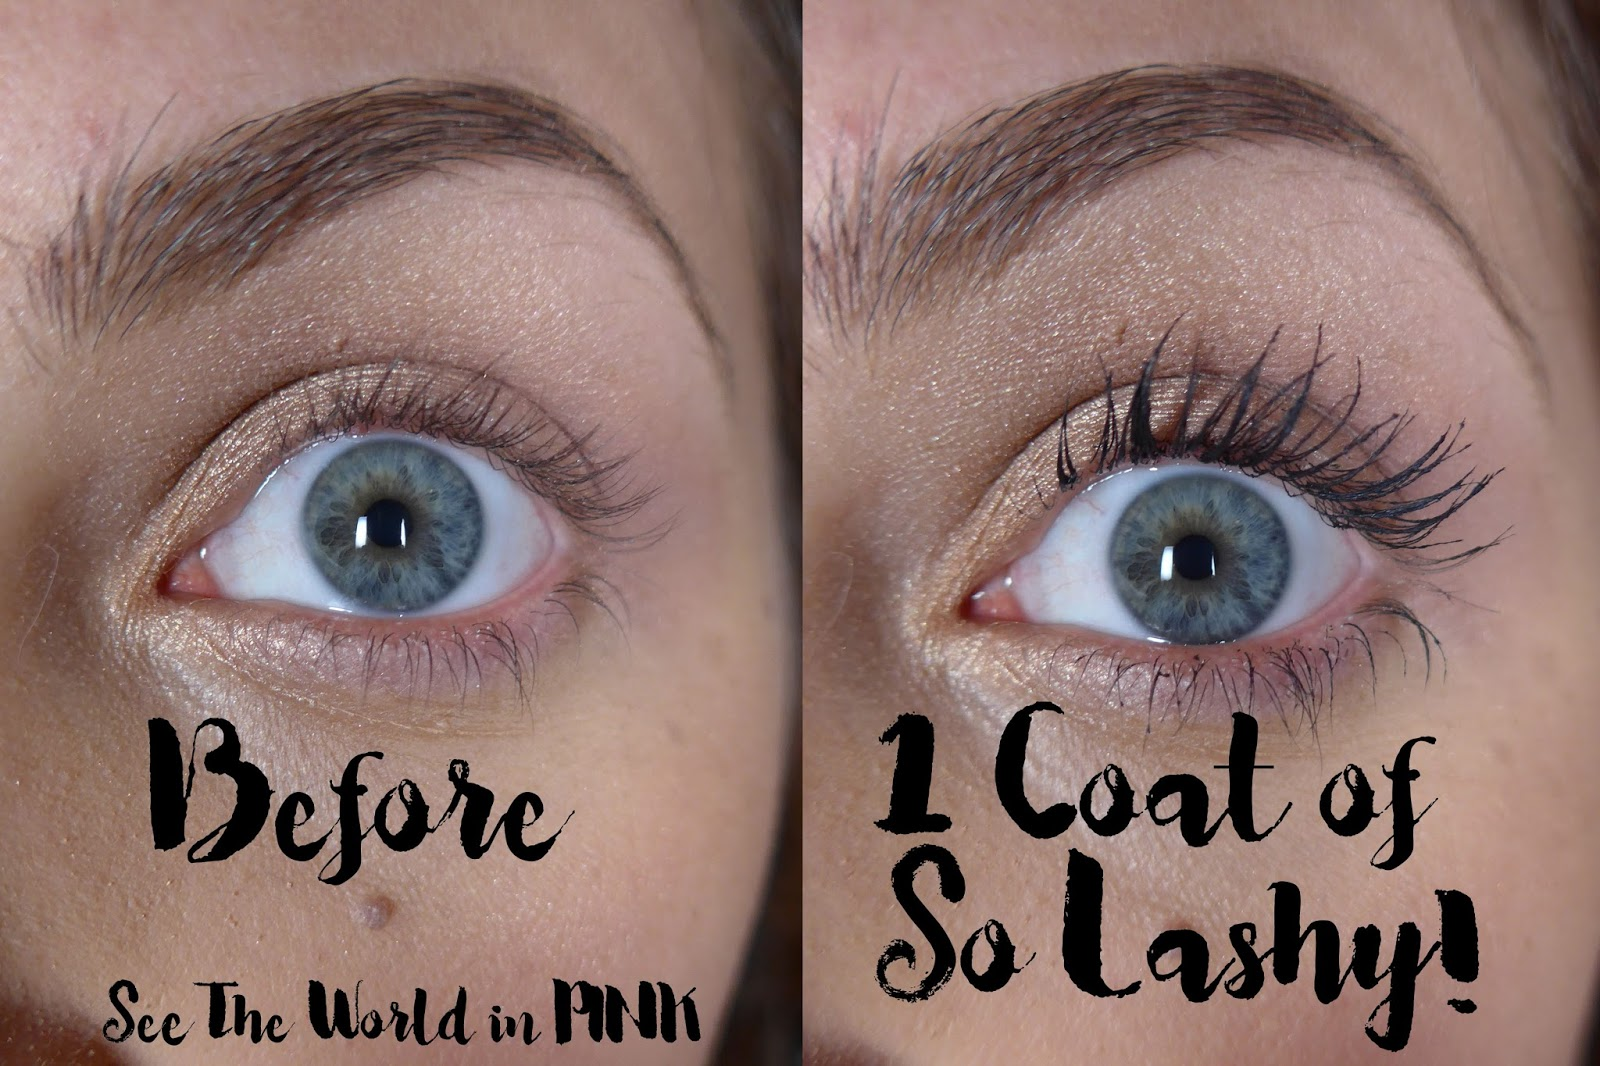 covergirl so lashy blast pro mascara review and swatches